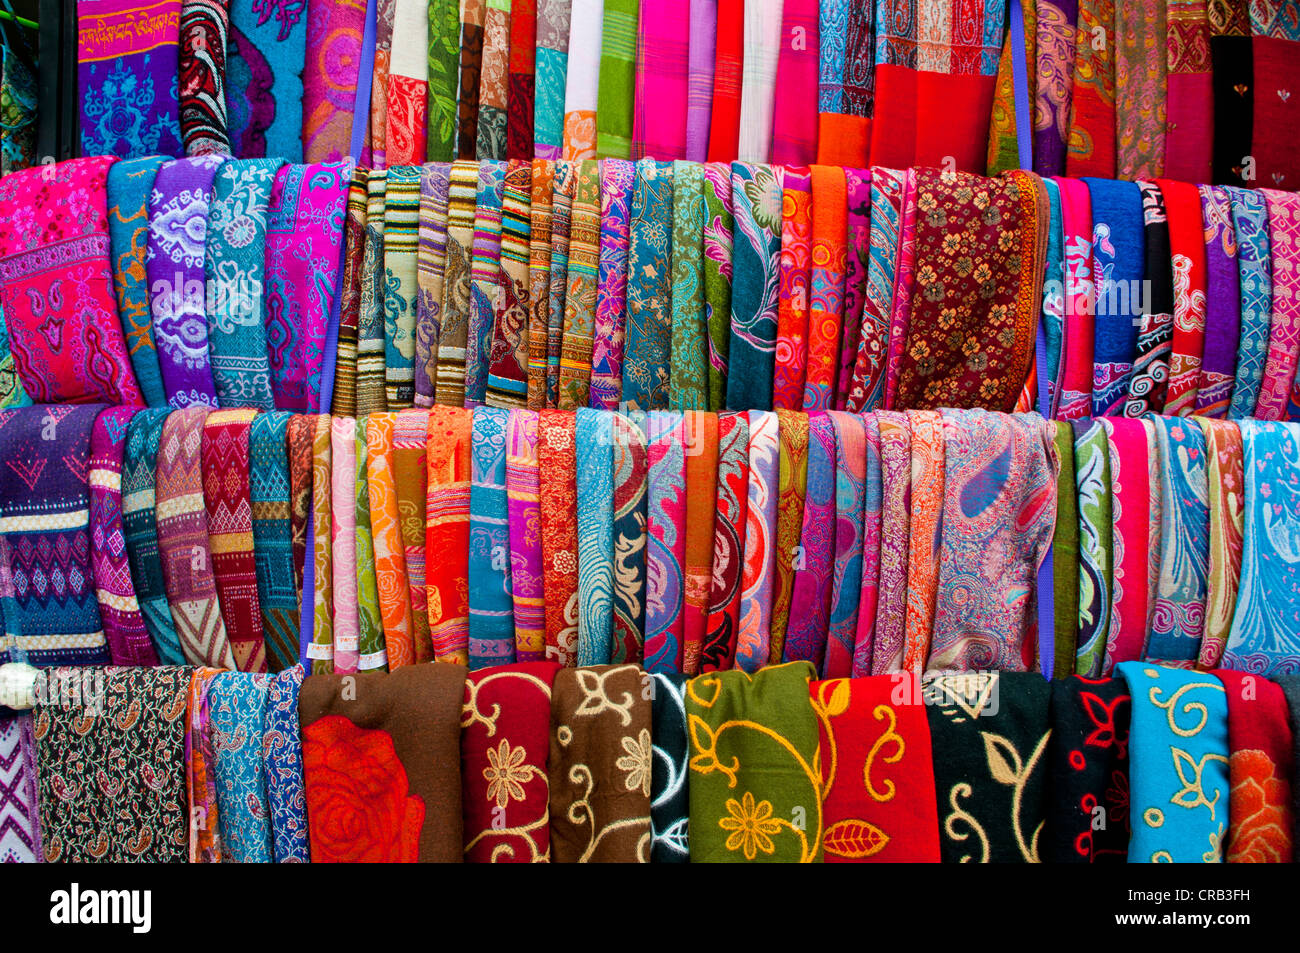 Colourful Tibetan garments for sale, Lhasa, Tibet, Asia - Stock Image